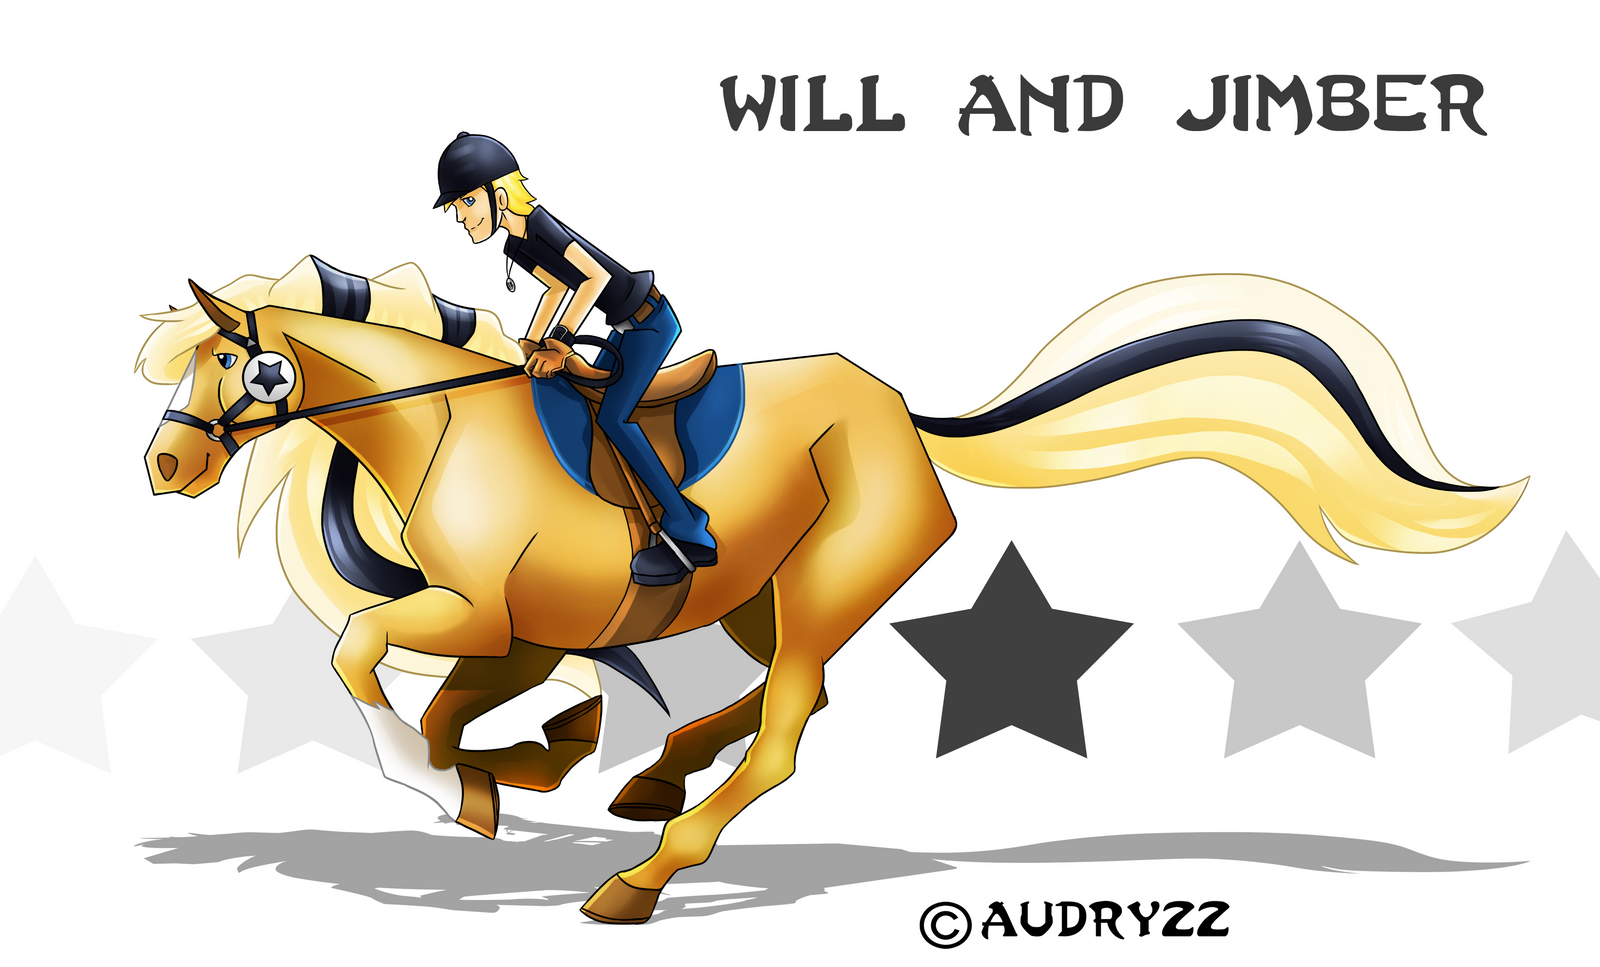 will and jimber by audry22 on deviantart